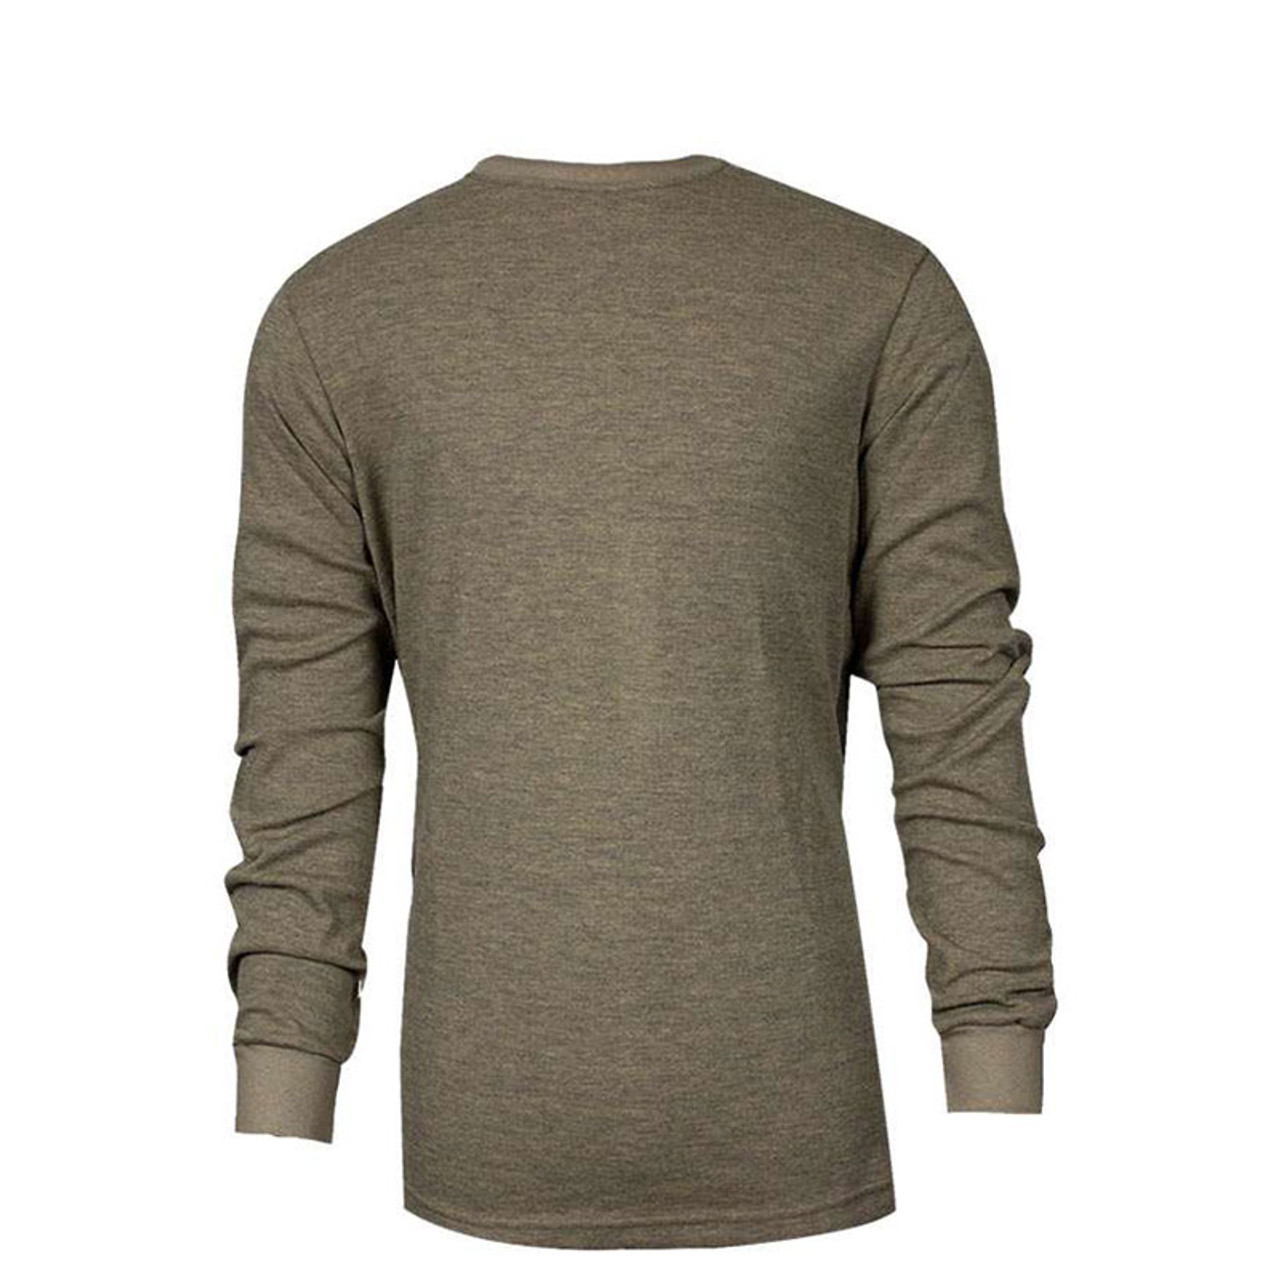 b8d8ef92d388 TECGEN FR Select Moisture Wicking Long SleeveTan T-Shirt C541NTNLS